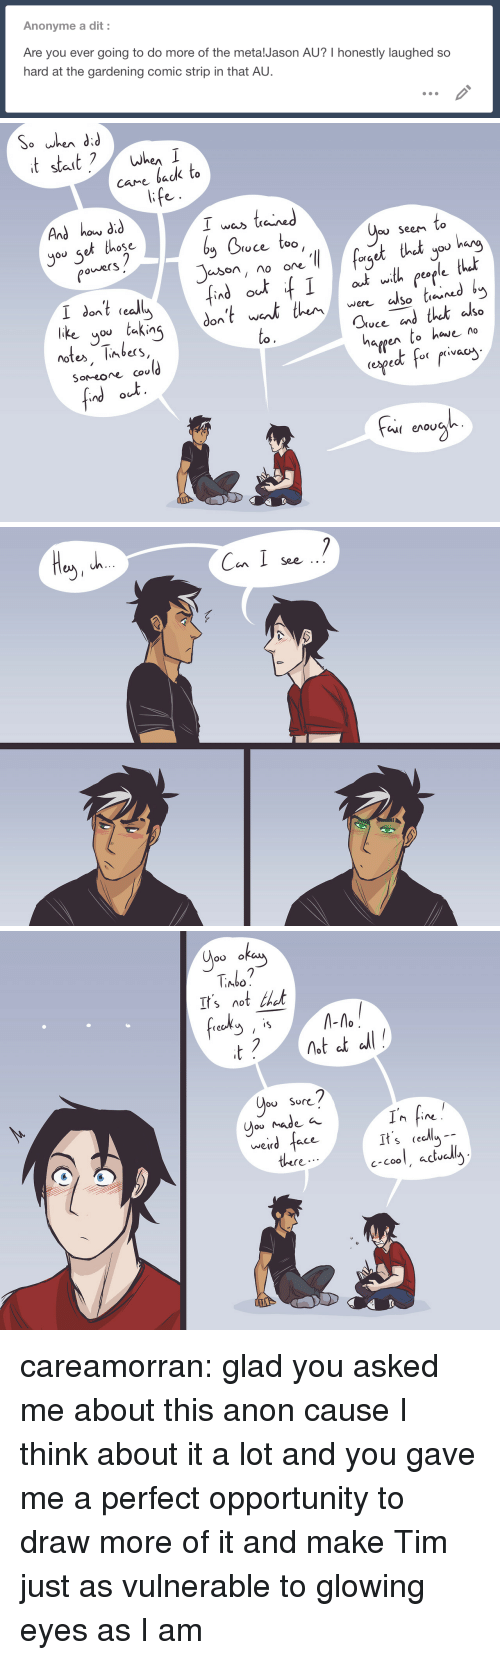 Target, Tumblr, and Weird: Anonyme a dit:  Are you ever going to do more of the metalJason AU? I honestly laughed so  hard at the gardening comic strip in that AU.   And how did  you set those  I was taied  Doce too  ou SeeM Co  owerS  org  So tieu  like you taking  notes, limbers,  SoMeoe cou  to.  hargen to have no  (ngeよf-( r.vac  Cu( enoU   Can I soe  See   Abo  It'snot thet  frech -  ou Sor<  weird  ace  It s cecly  c-Cool, aclu  there careamorran:  glad you asked me about this anon cause I think about it a lot and you gave me a perfect opportunity to draw more of it and makeTim just as vulnerable to glowing eyes as I am